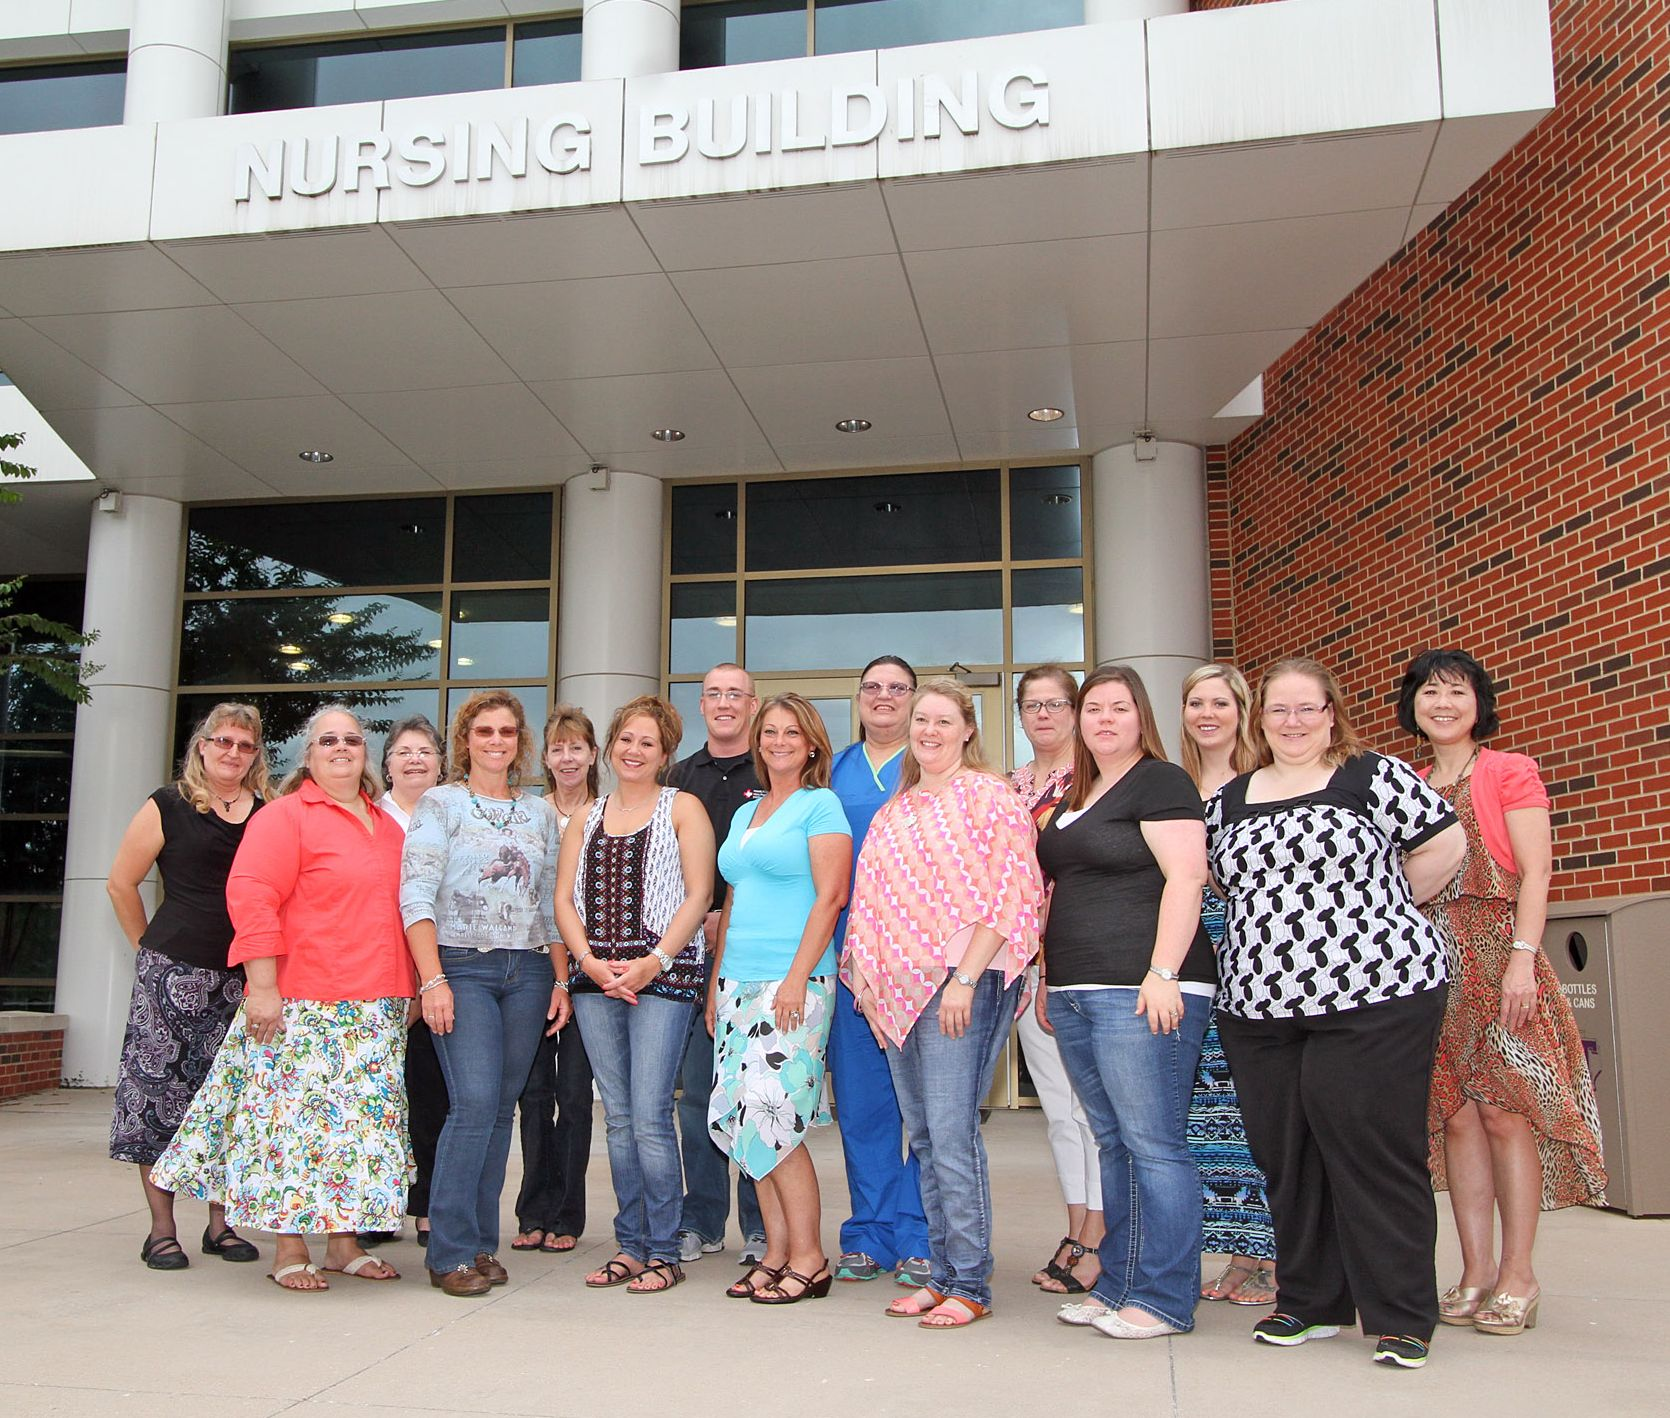 Tarleton State University's Department of Nursing wrapped up training for the first of two cohorts on June 30, as part of its Texas Workforce Commission grant-funded Nursing Mentorship Program. Cohort 1 included training for registered nurses from 10 health care agencies, including Brownwood Regional Medical Center, Glen Rose Medical Center, Eastland Memorial Hospital, Hamilton General Hospital, Goodall-Witcher Hospital, Lake Granbury Medical Center, Palo Pinto General Hospital, Texas Health Resources–Cleburne, Texas Health Resources–Stephenville and Weatherford Regional Medical Center.